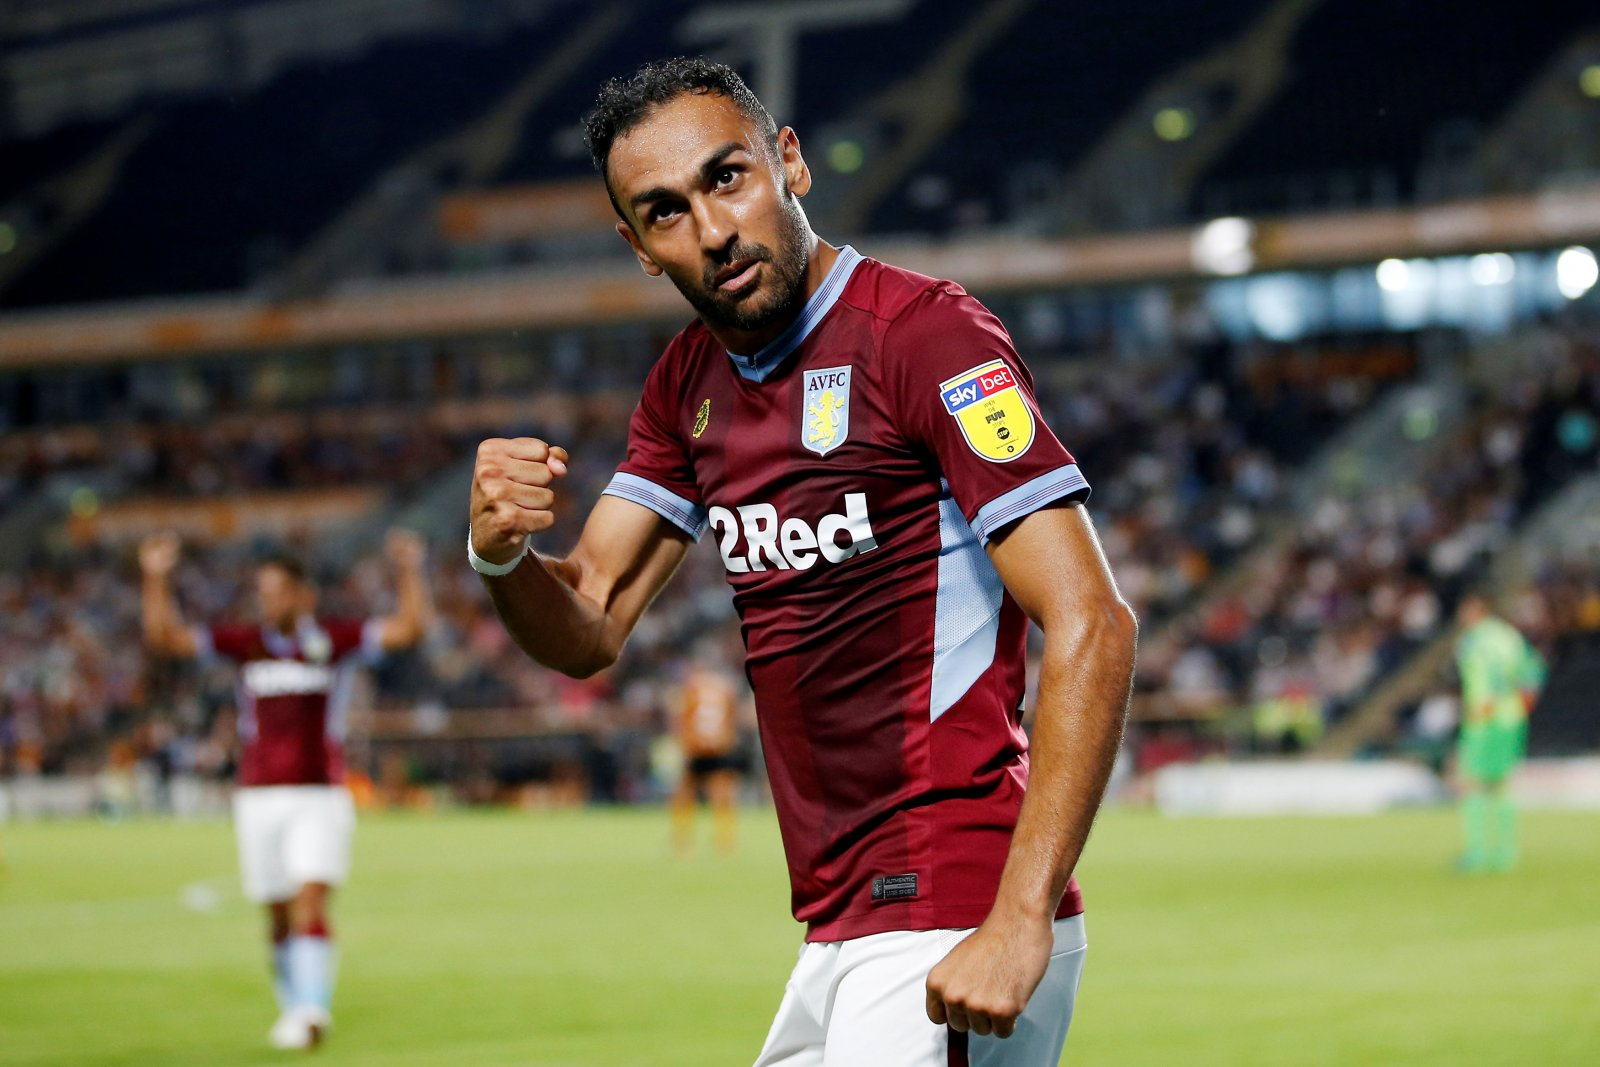 Ahmed Elmohamady Consistent Player for Aston Villa